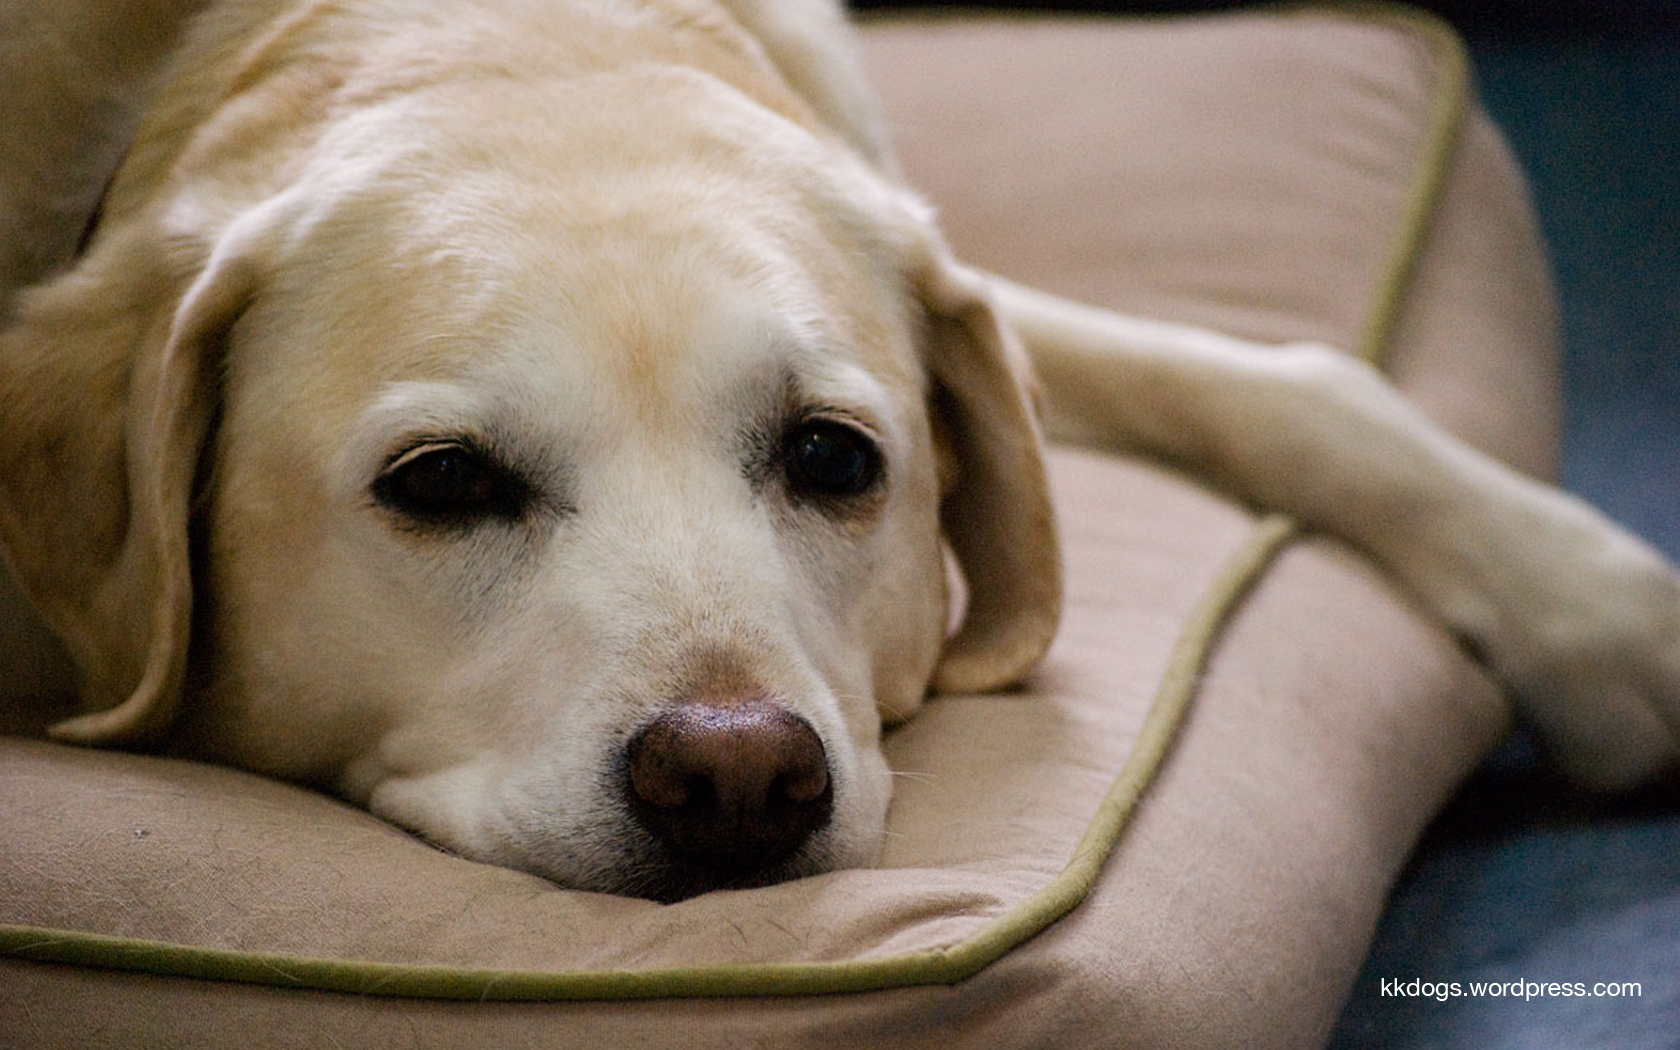 Cute Puppies Full Hd Wallpapers The Dog Blog Rose And Gollum Are Labrador Retrievers In